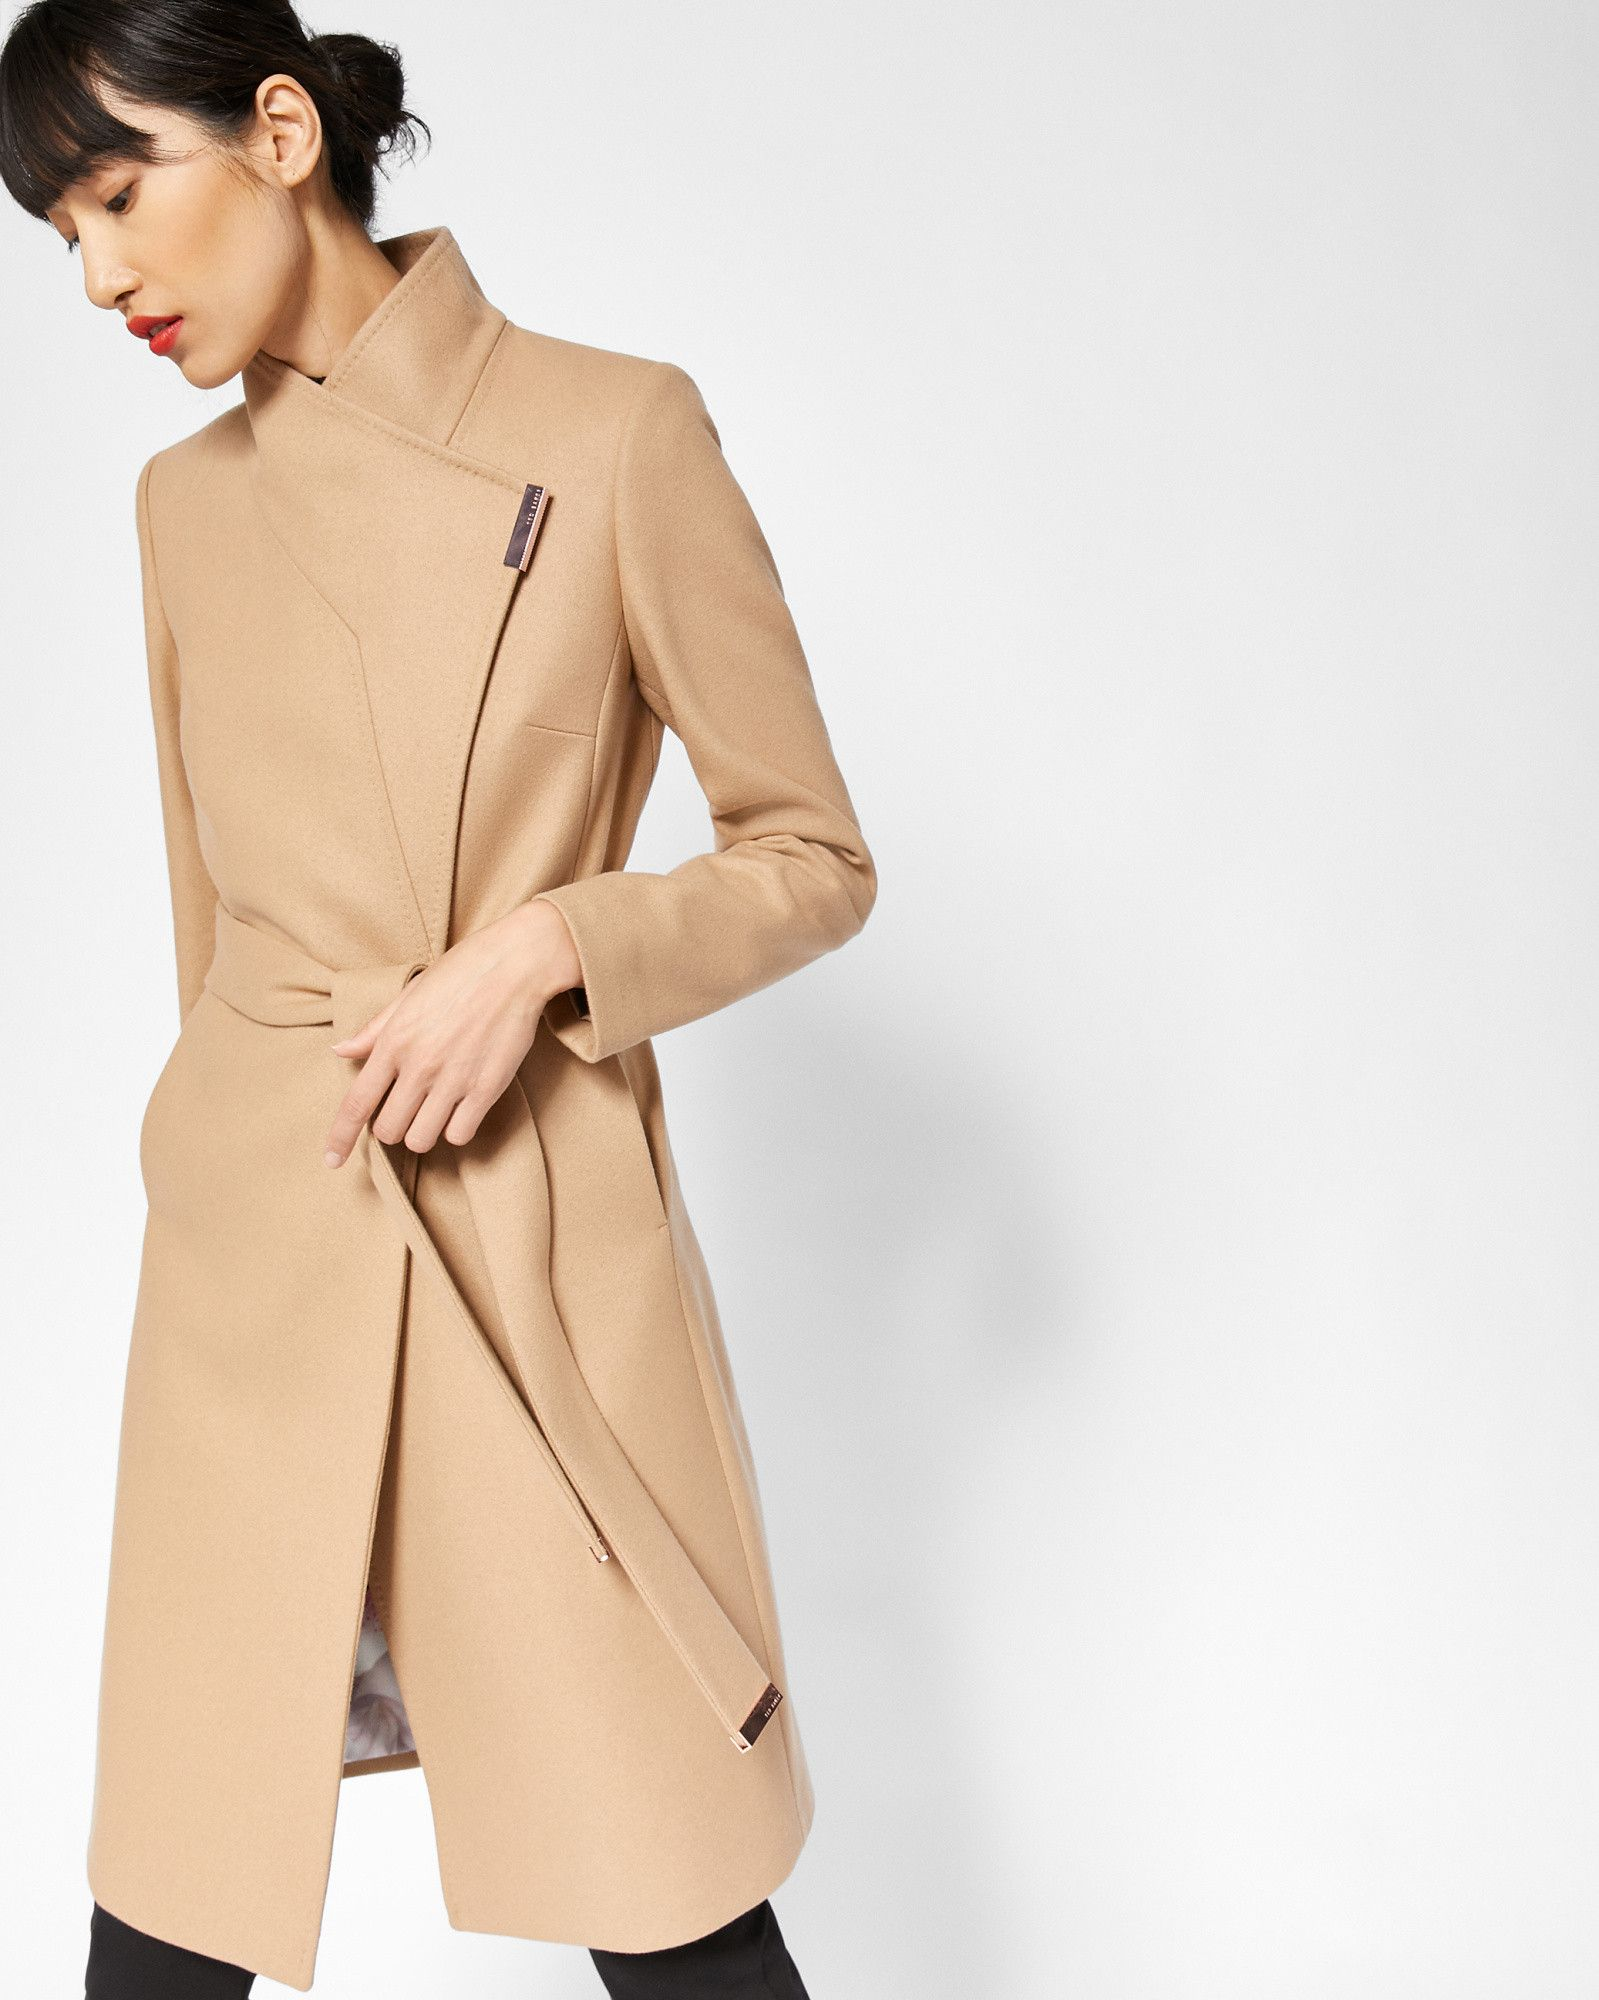 be6145094a2f ... Ted Baker s sophisticated coats and jackets for women. The Fashion  News. Cashmere-blend wrap front coat - Camel